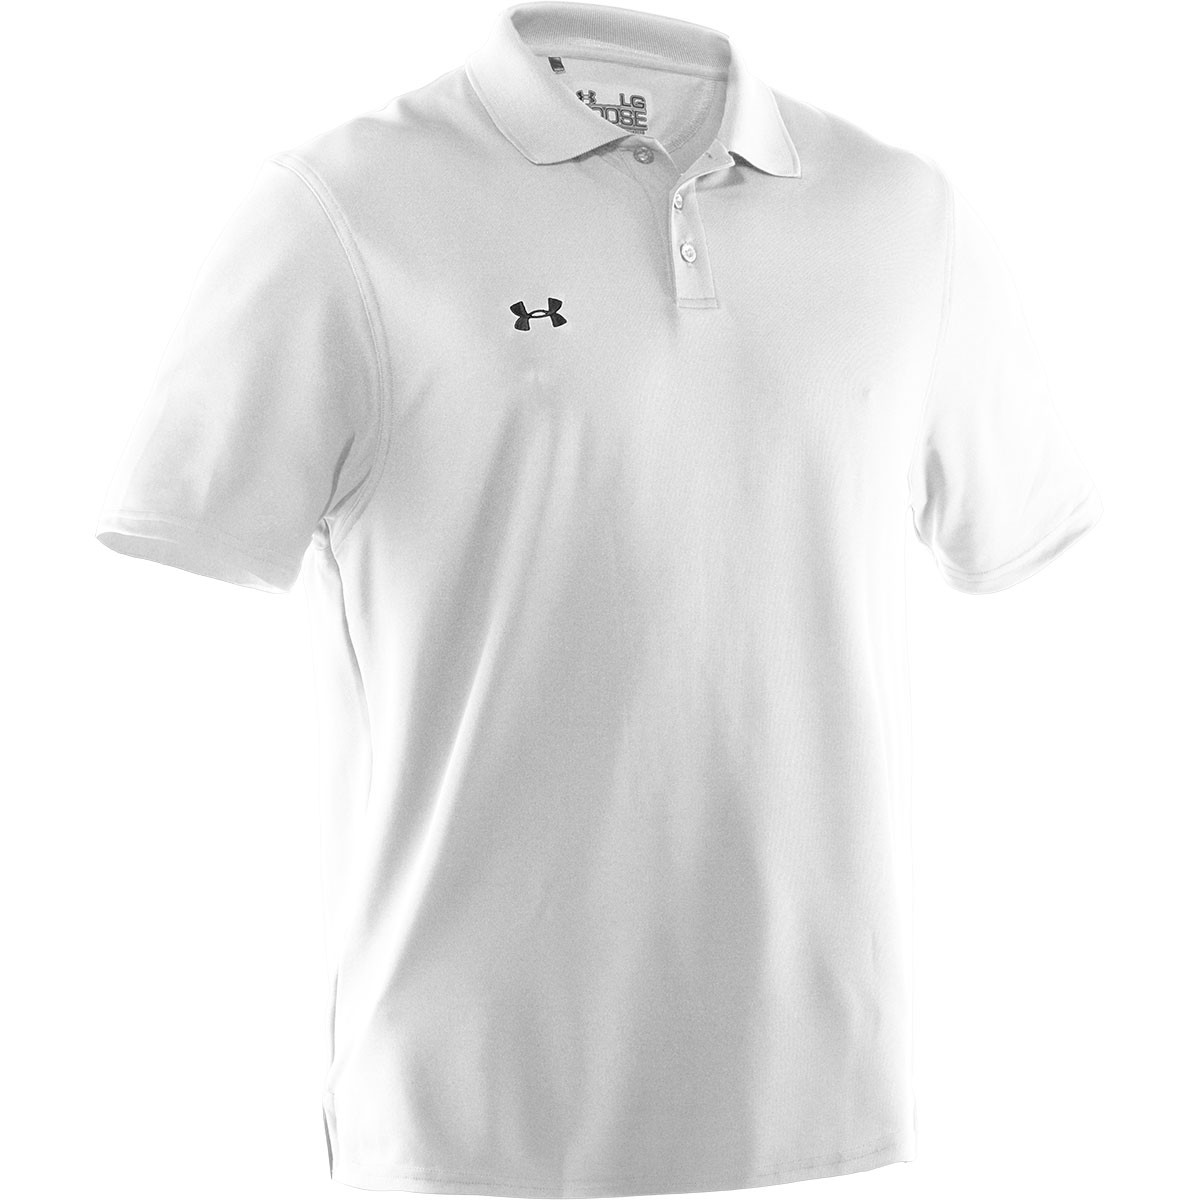 Under armour polo embroidery for Under armour embroidered polo shirts